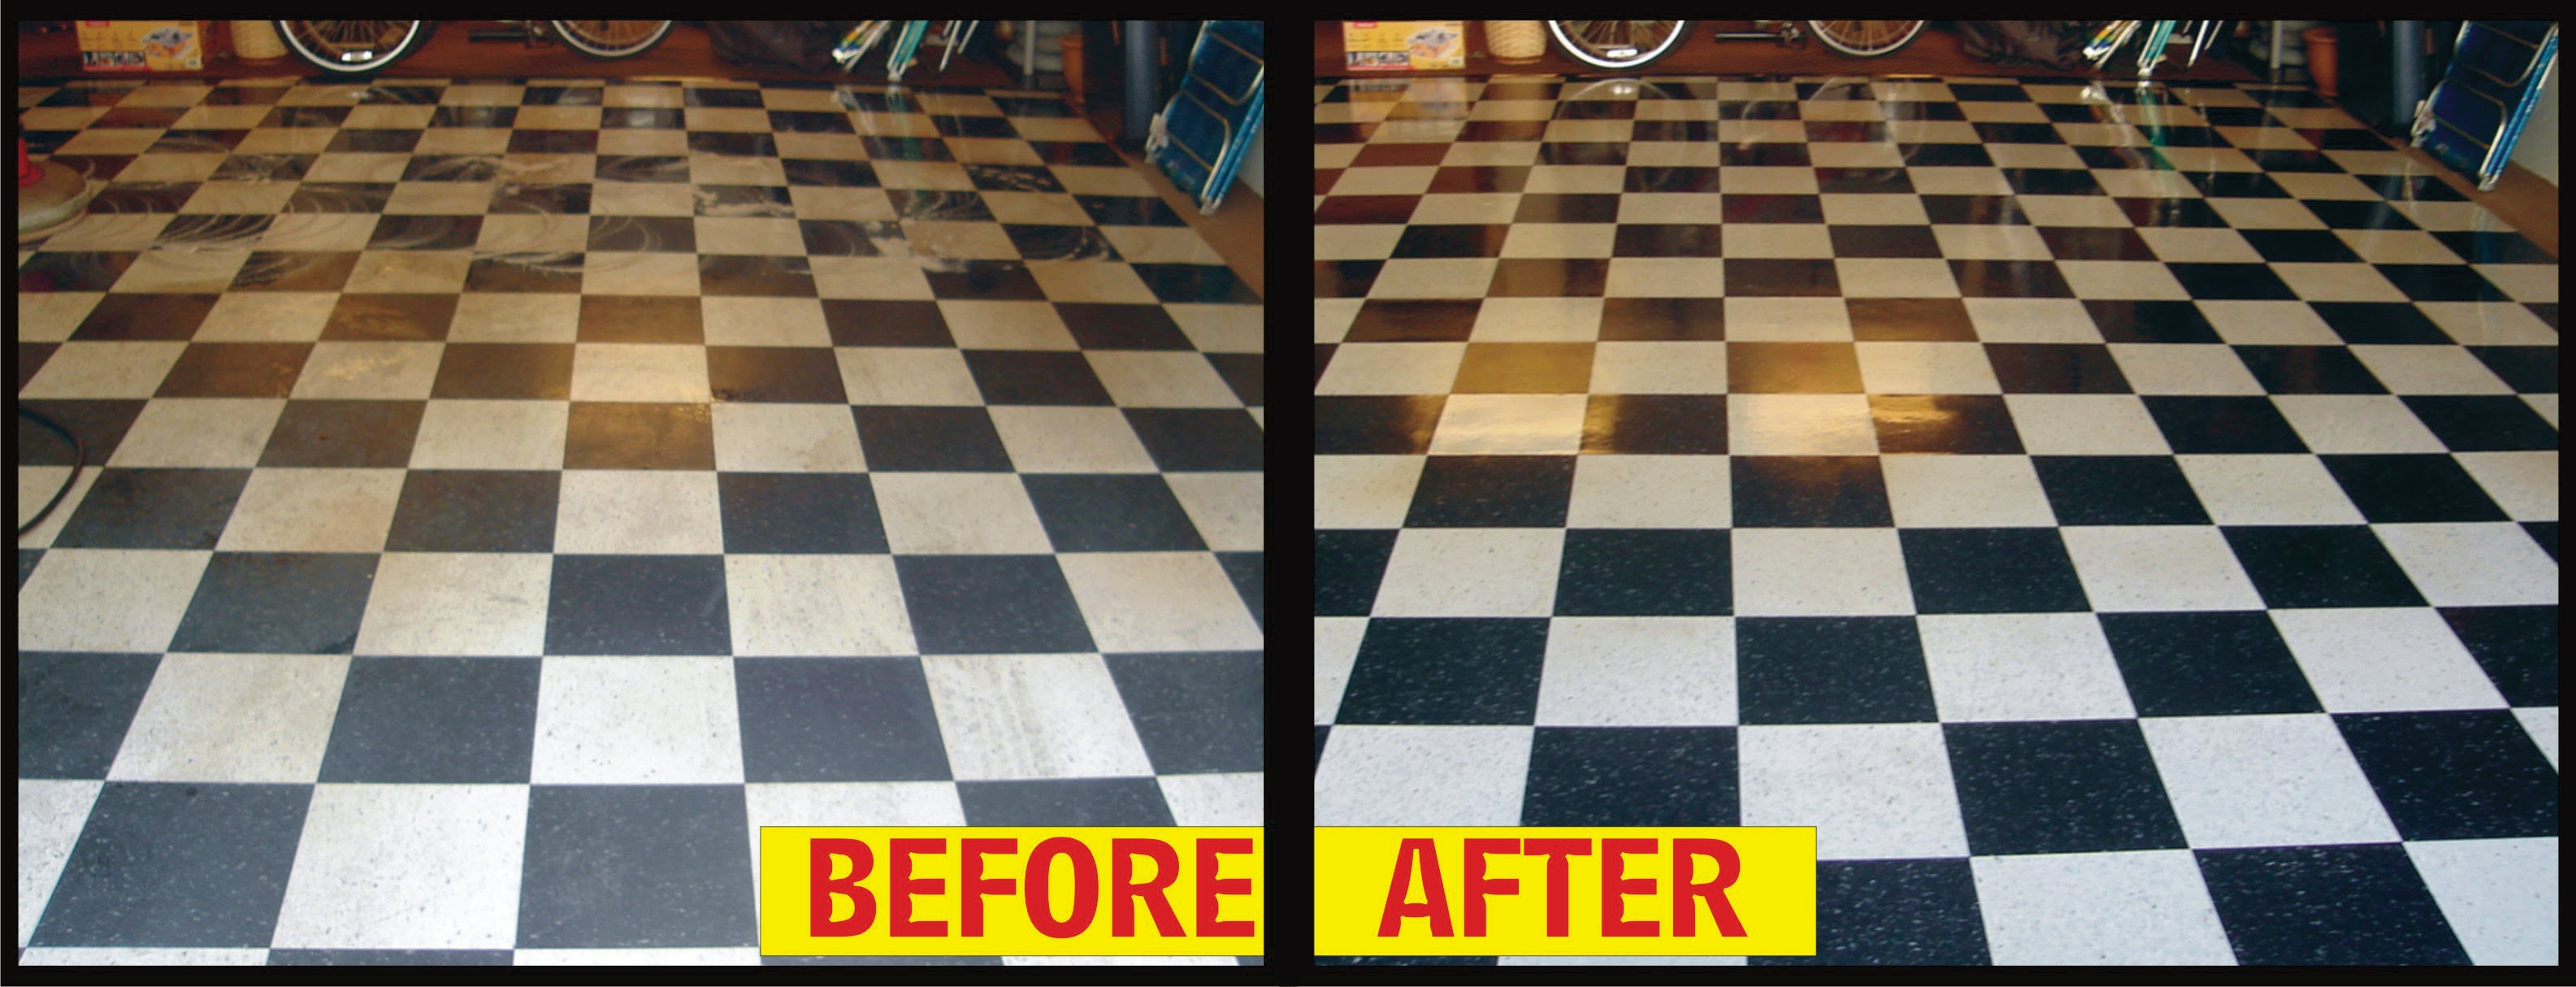 Linoleum Vinyl Clean Waxing Polishing